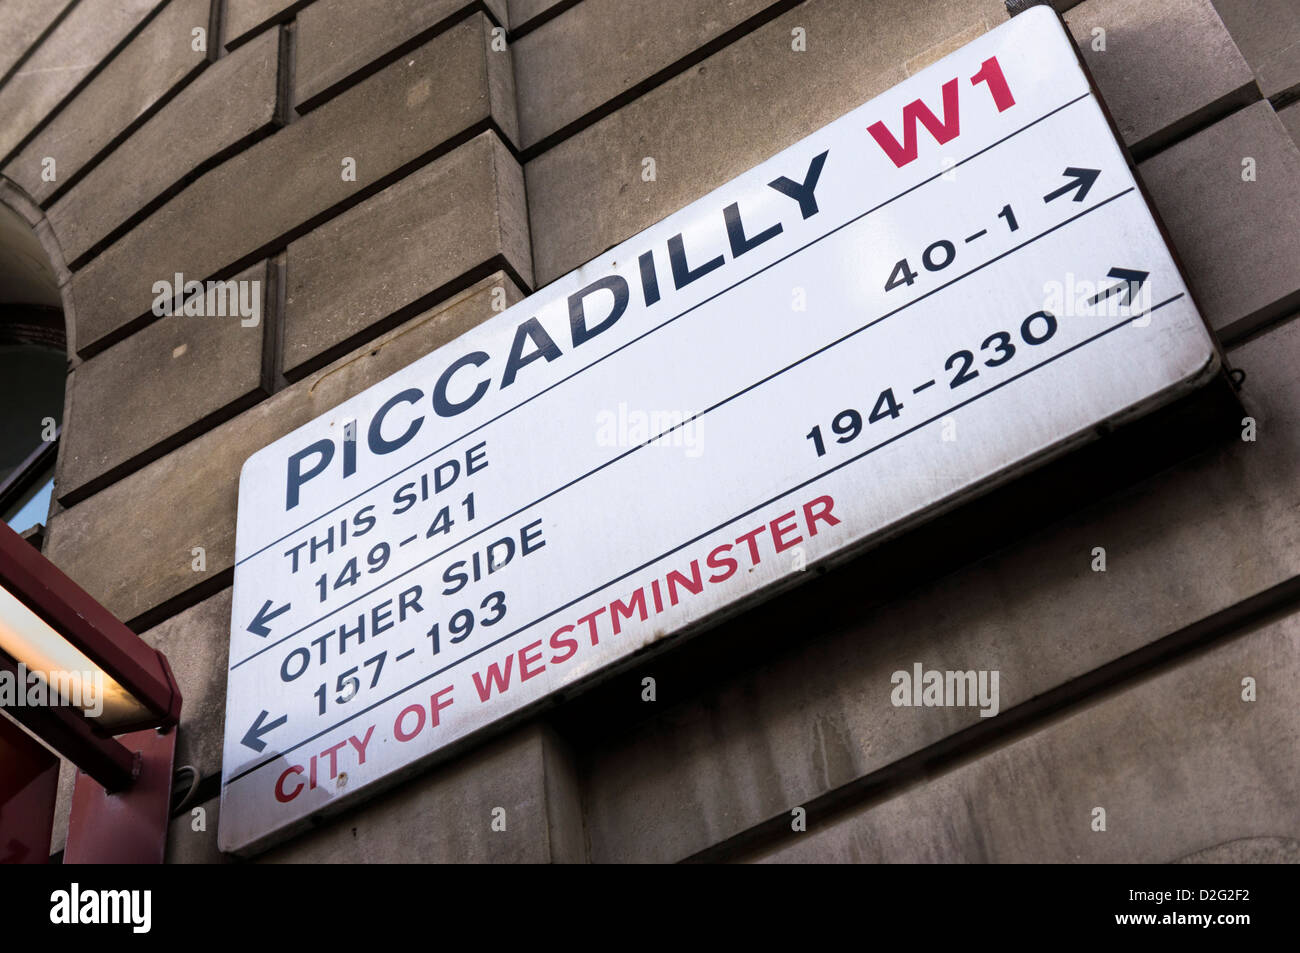 Piccadilly street sign, London, UK - Stock Image